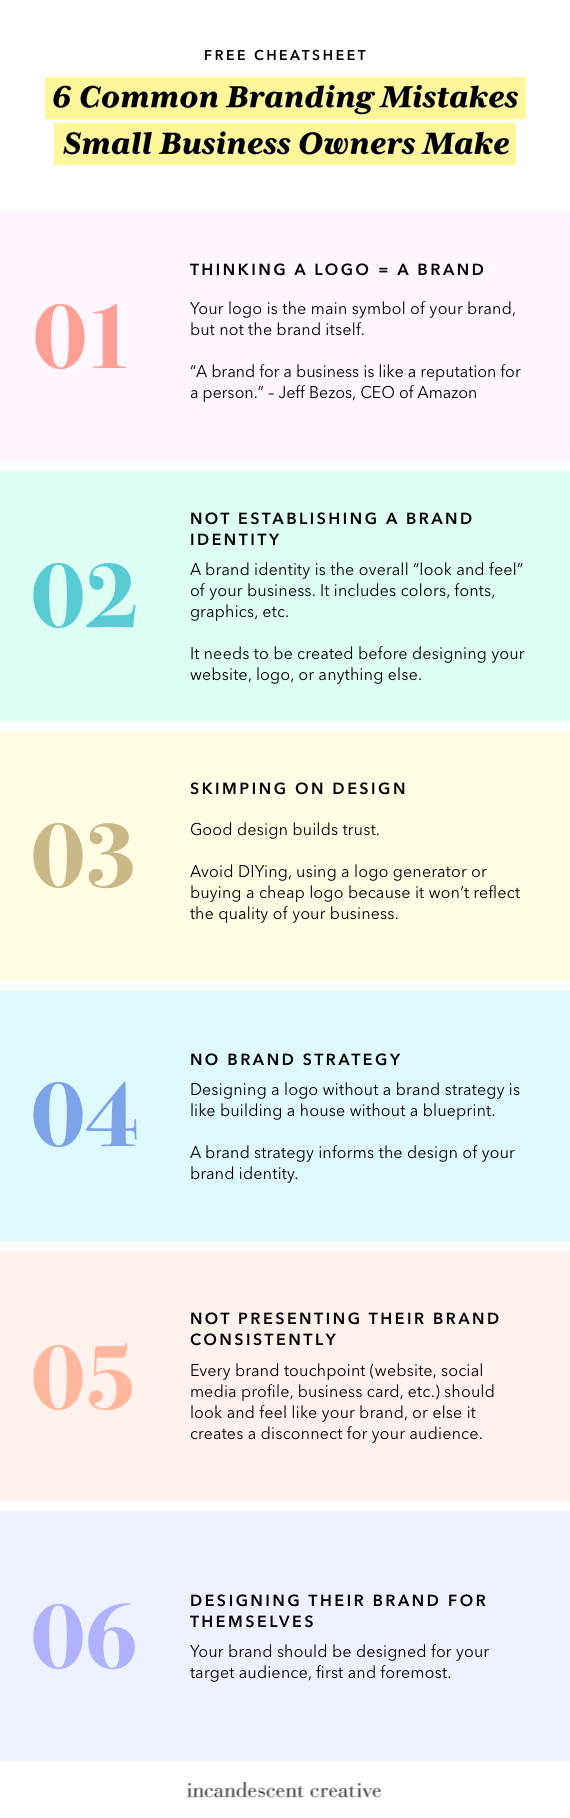 Cheatsheet: 6 Common Branding Mistakes Small Business Owners Make